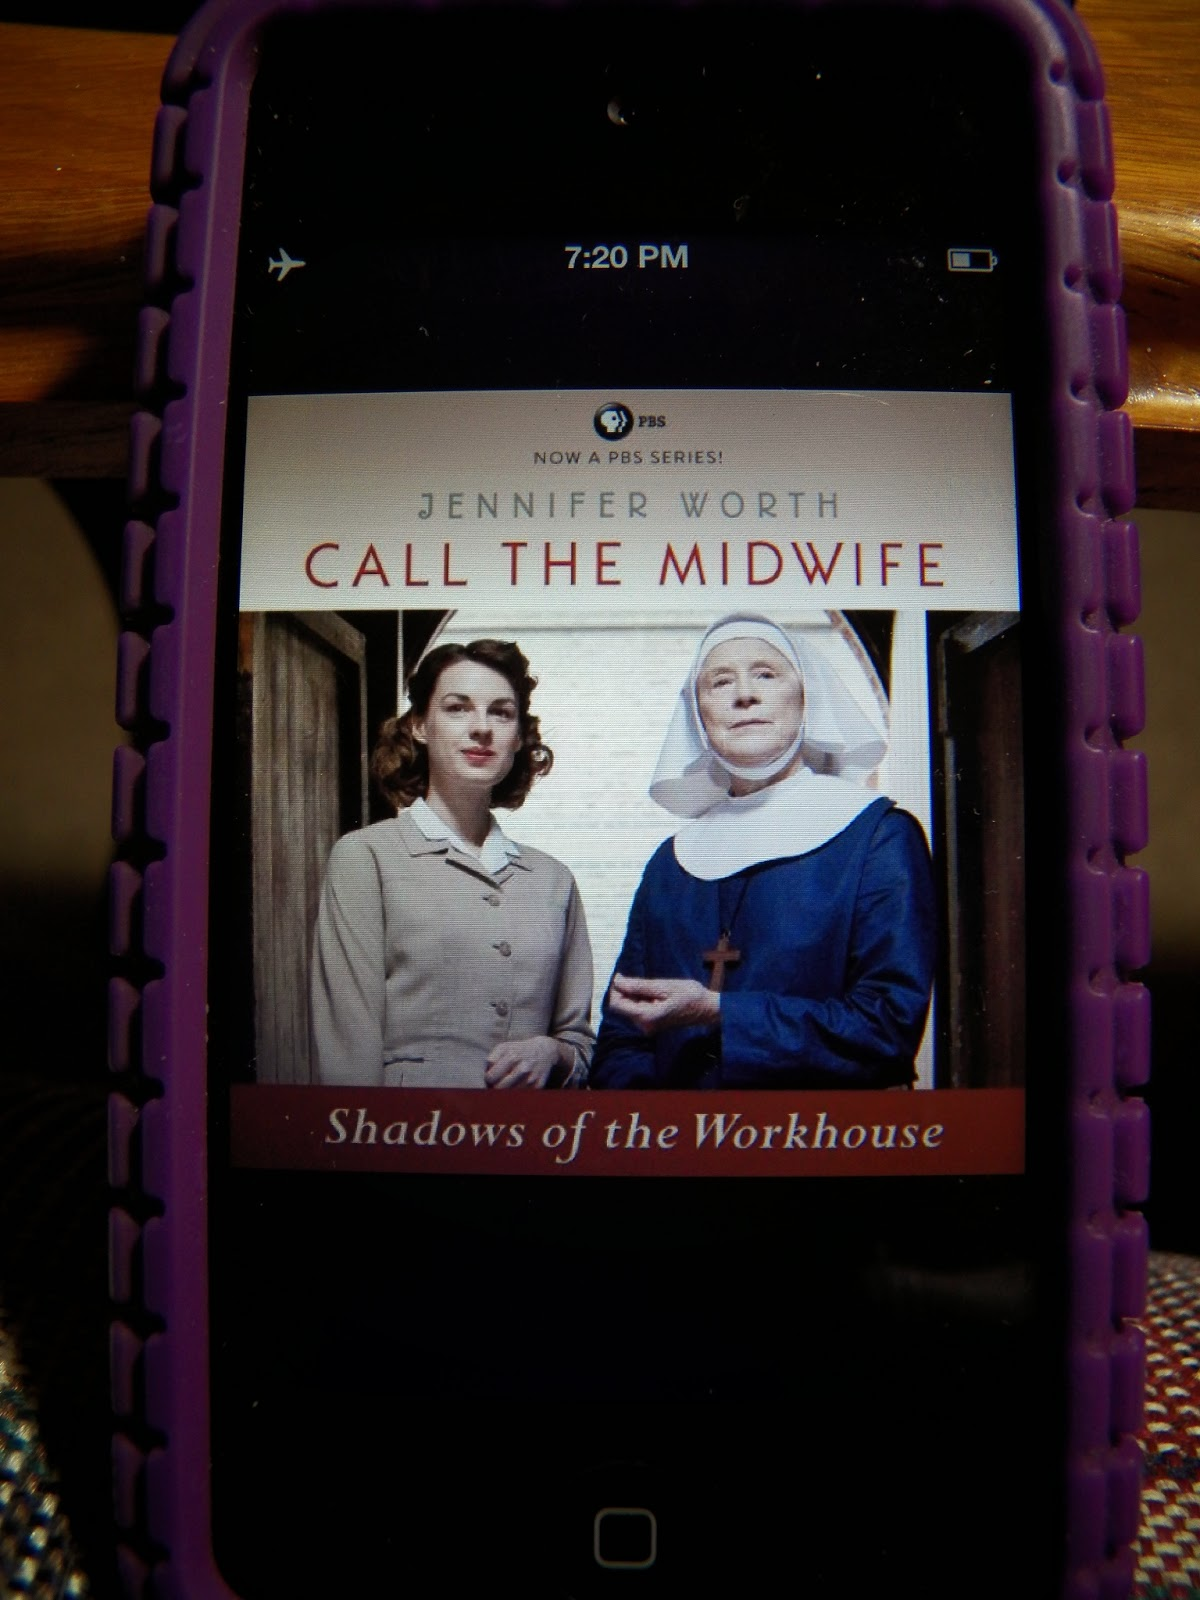 http://www.audible.com/pd/Bios-Memoirs/Shadows-of-the-Workhouse-Audiobook/B00H4GN0WI/ref=a_search_c4_1_1_srTtl?qid=1395363083&sr=1-1